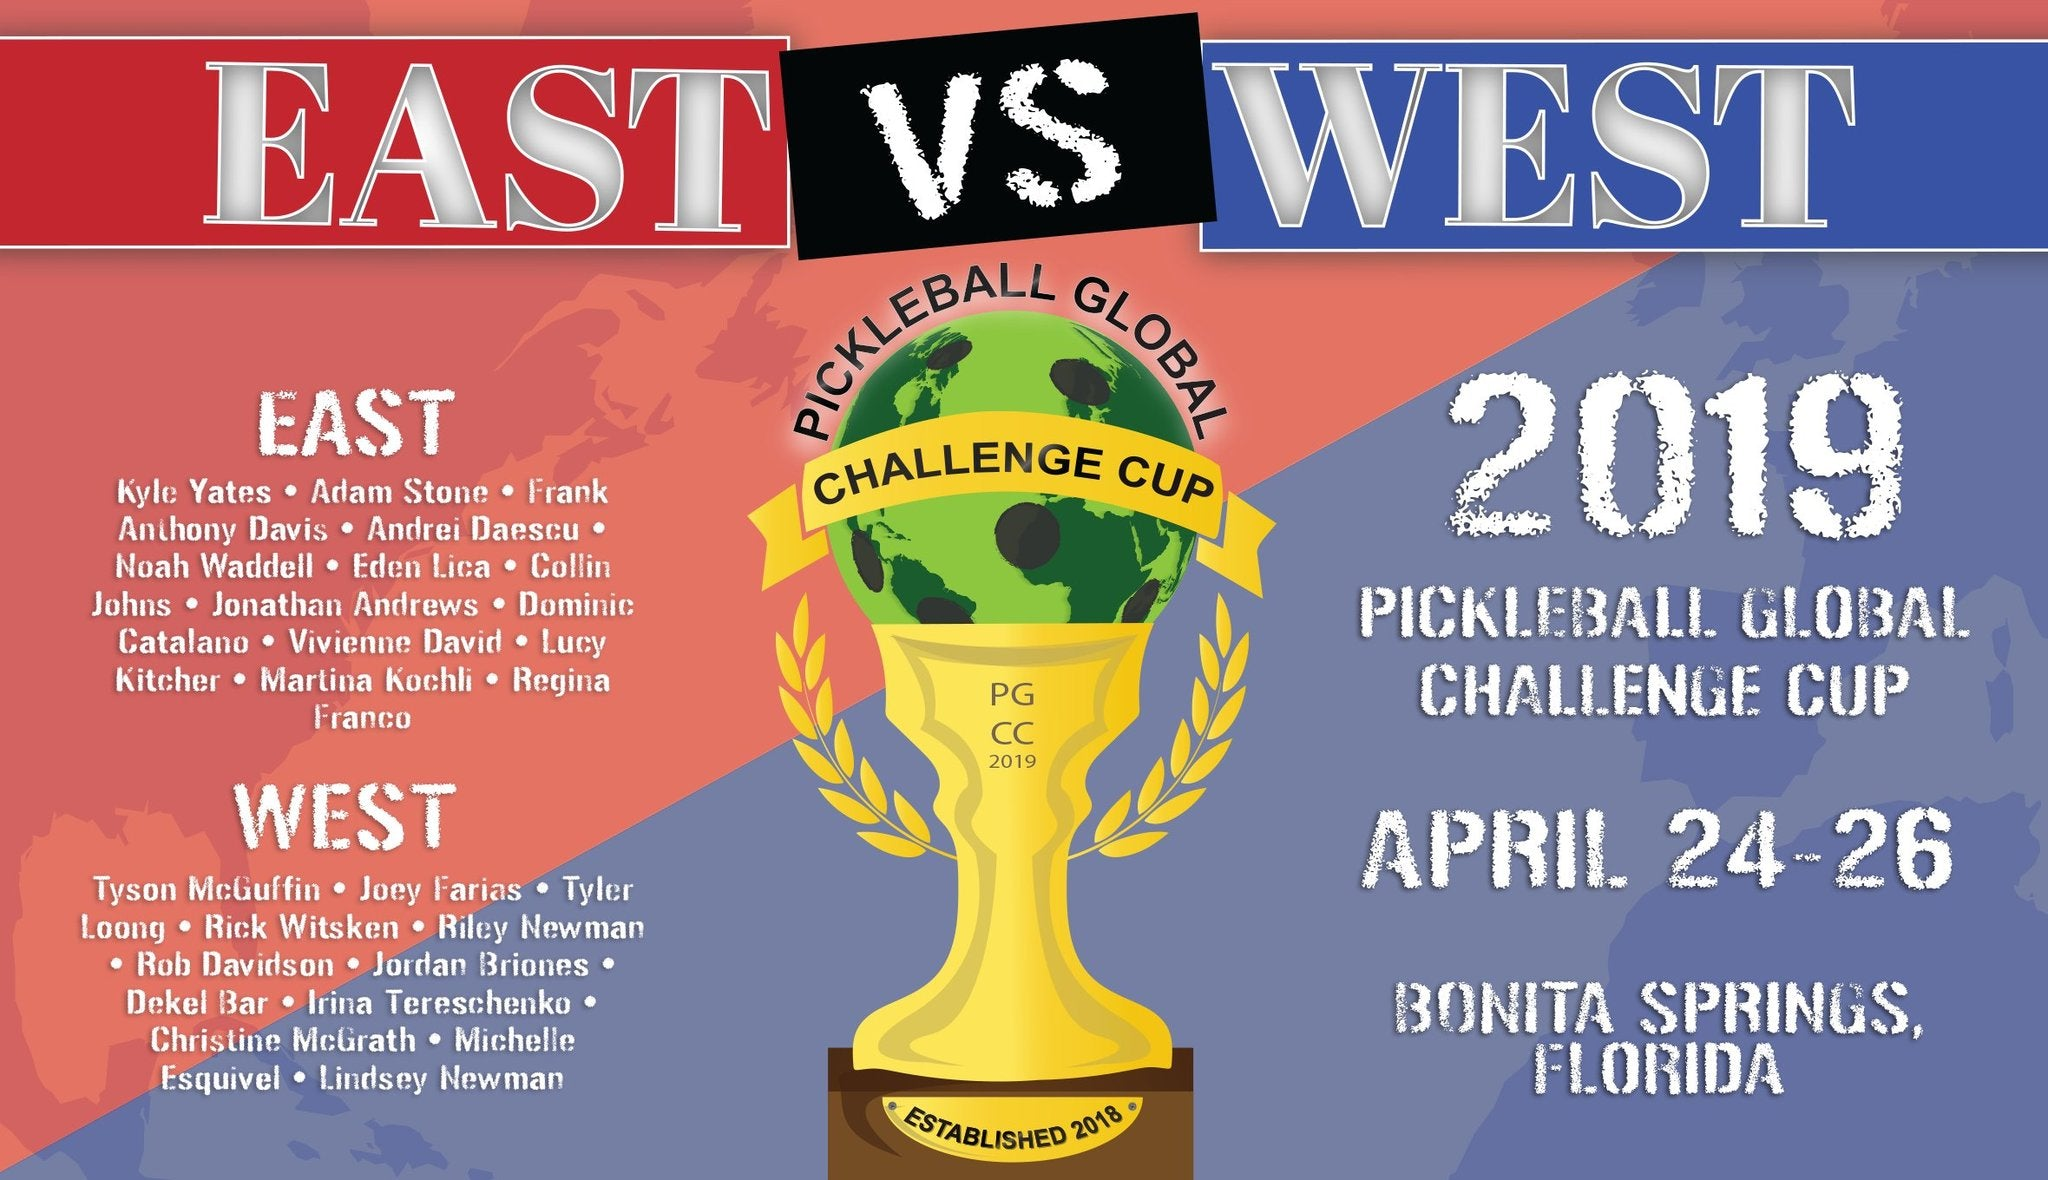 East Vs. West Pickleball Global Challenge Cup 2019